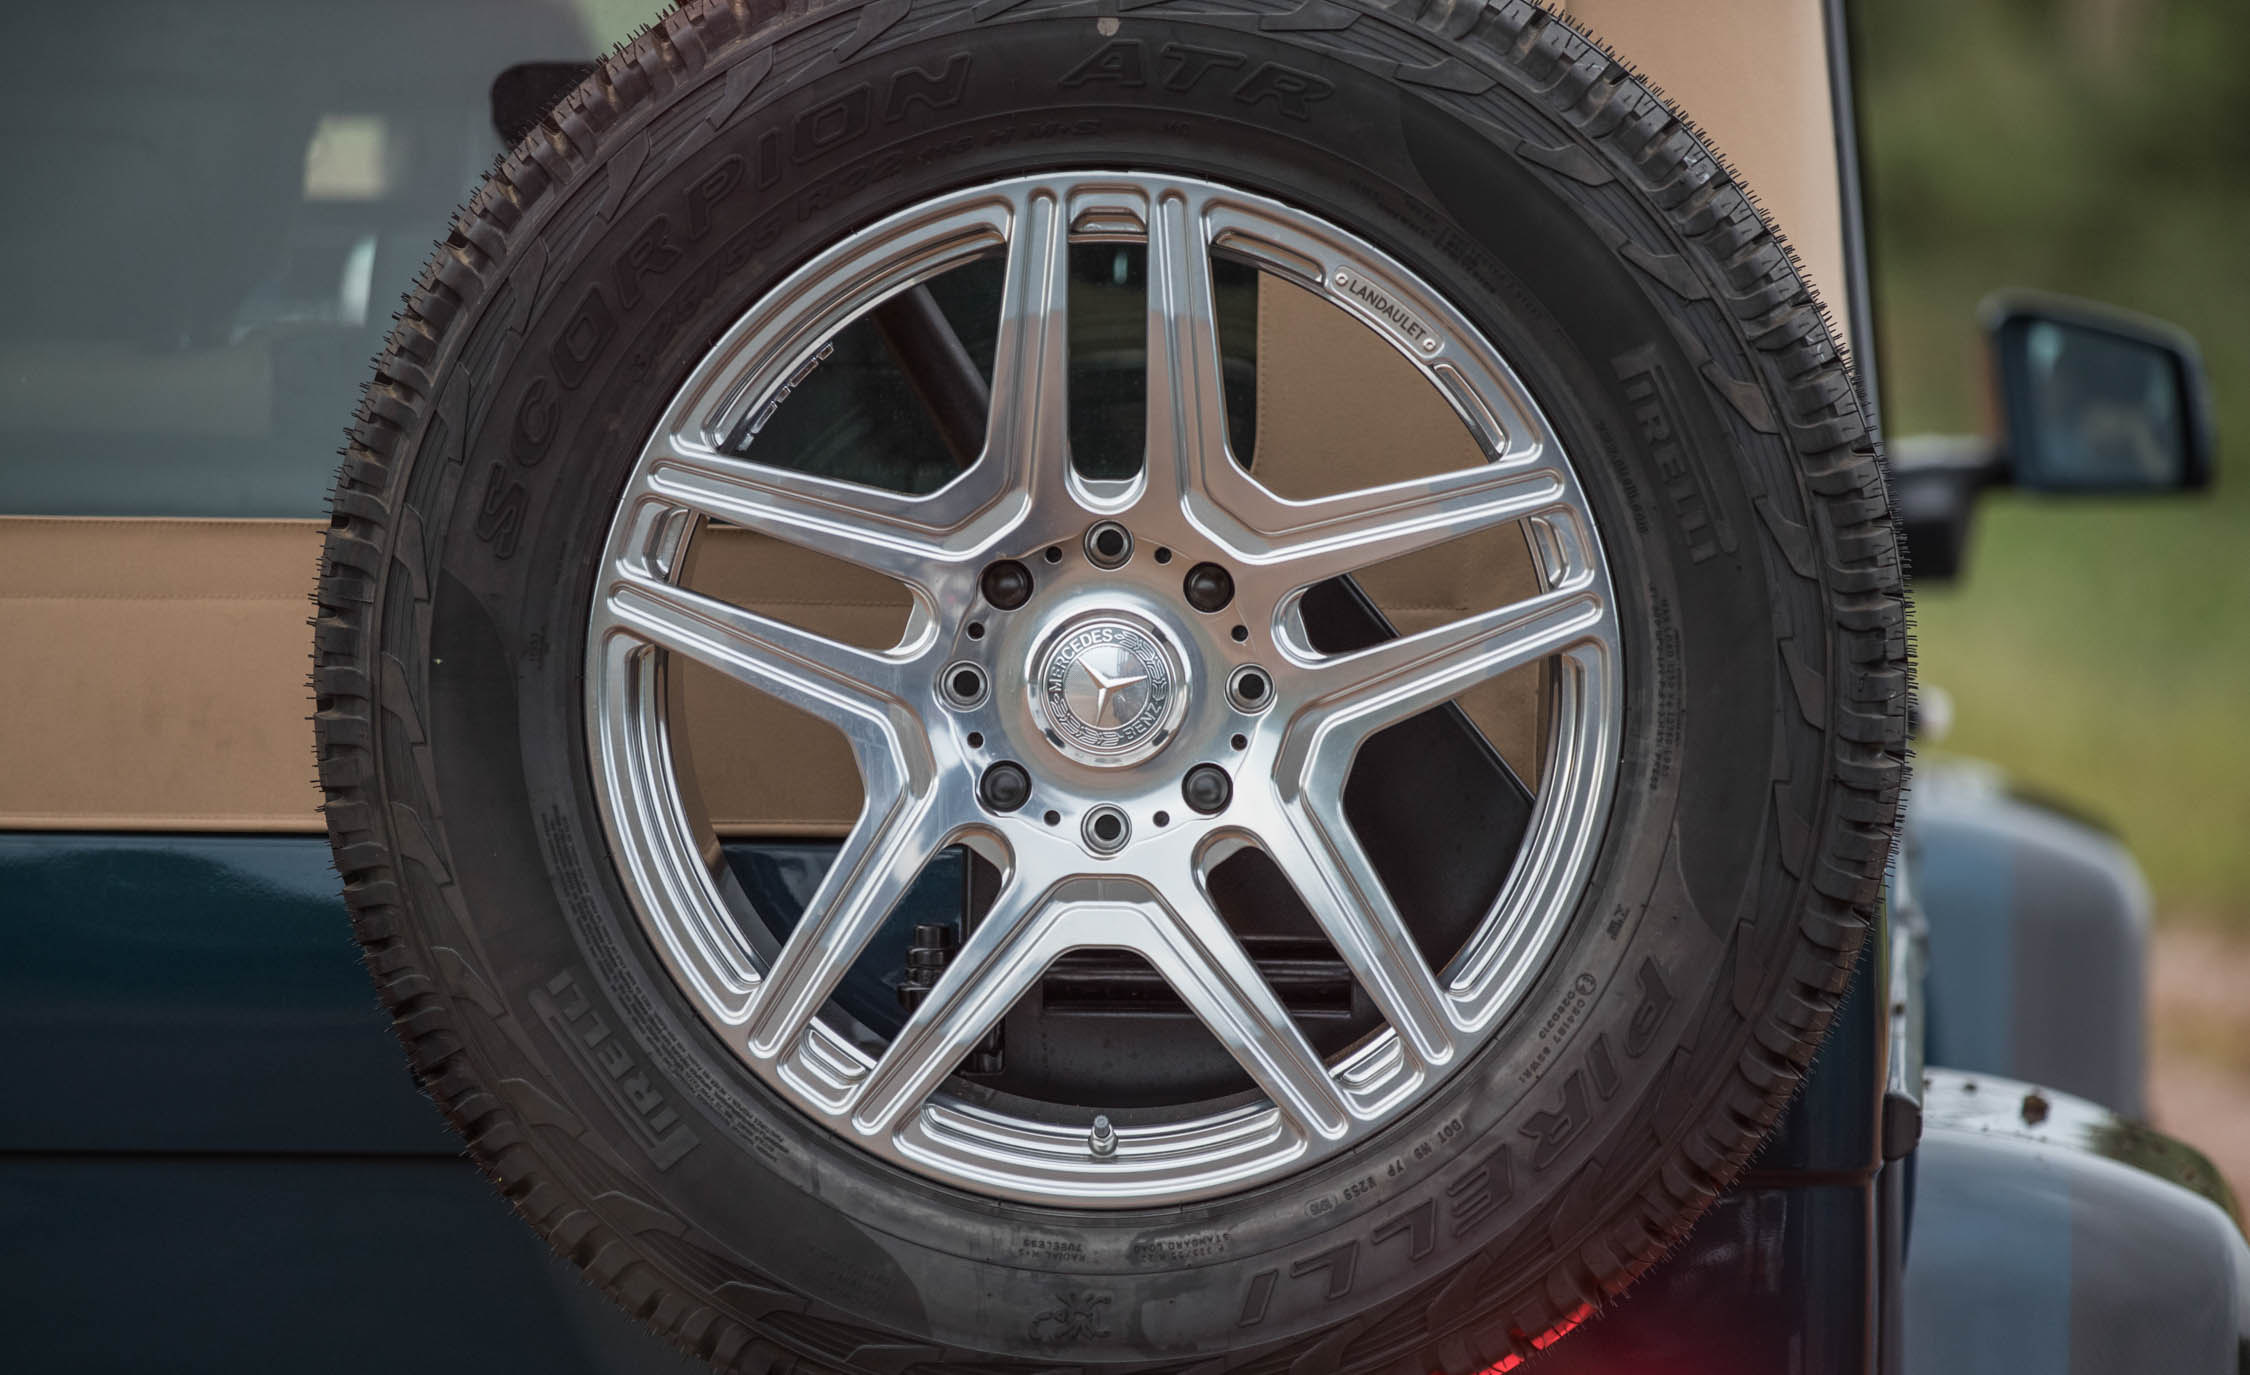 2018 Mercedes Maybach G650 Landaulet Exterior View Rear Spare Mounted Wheel (Photo 42 of 52)